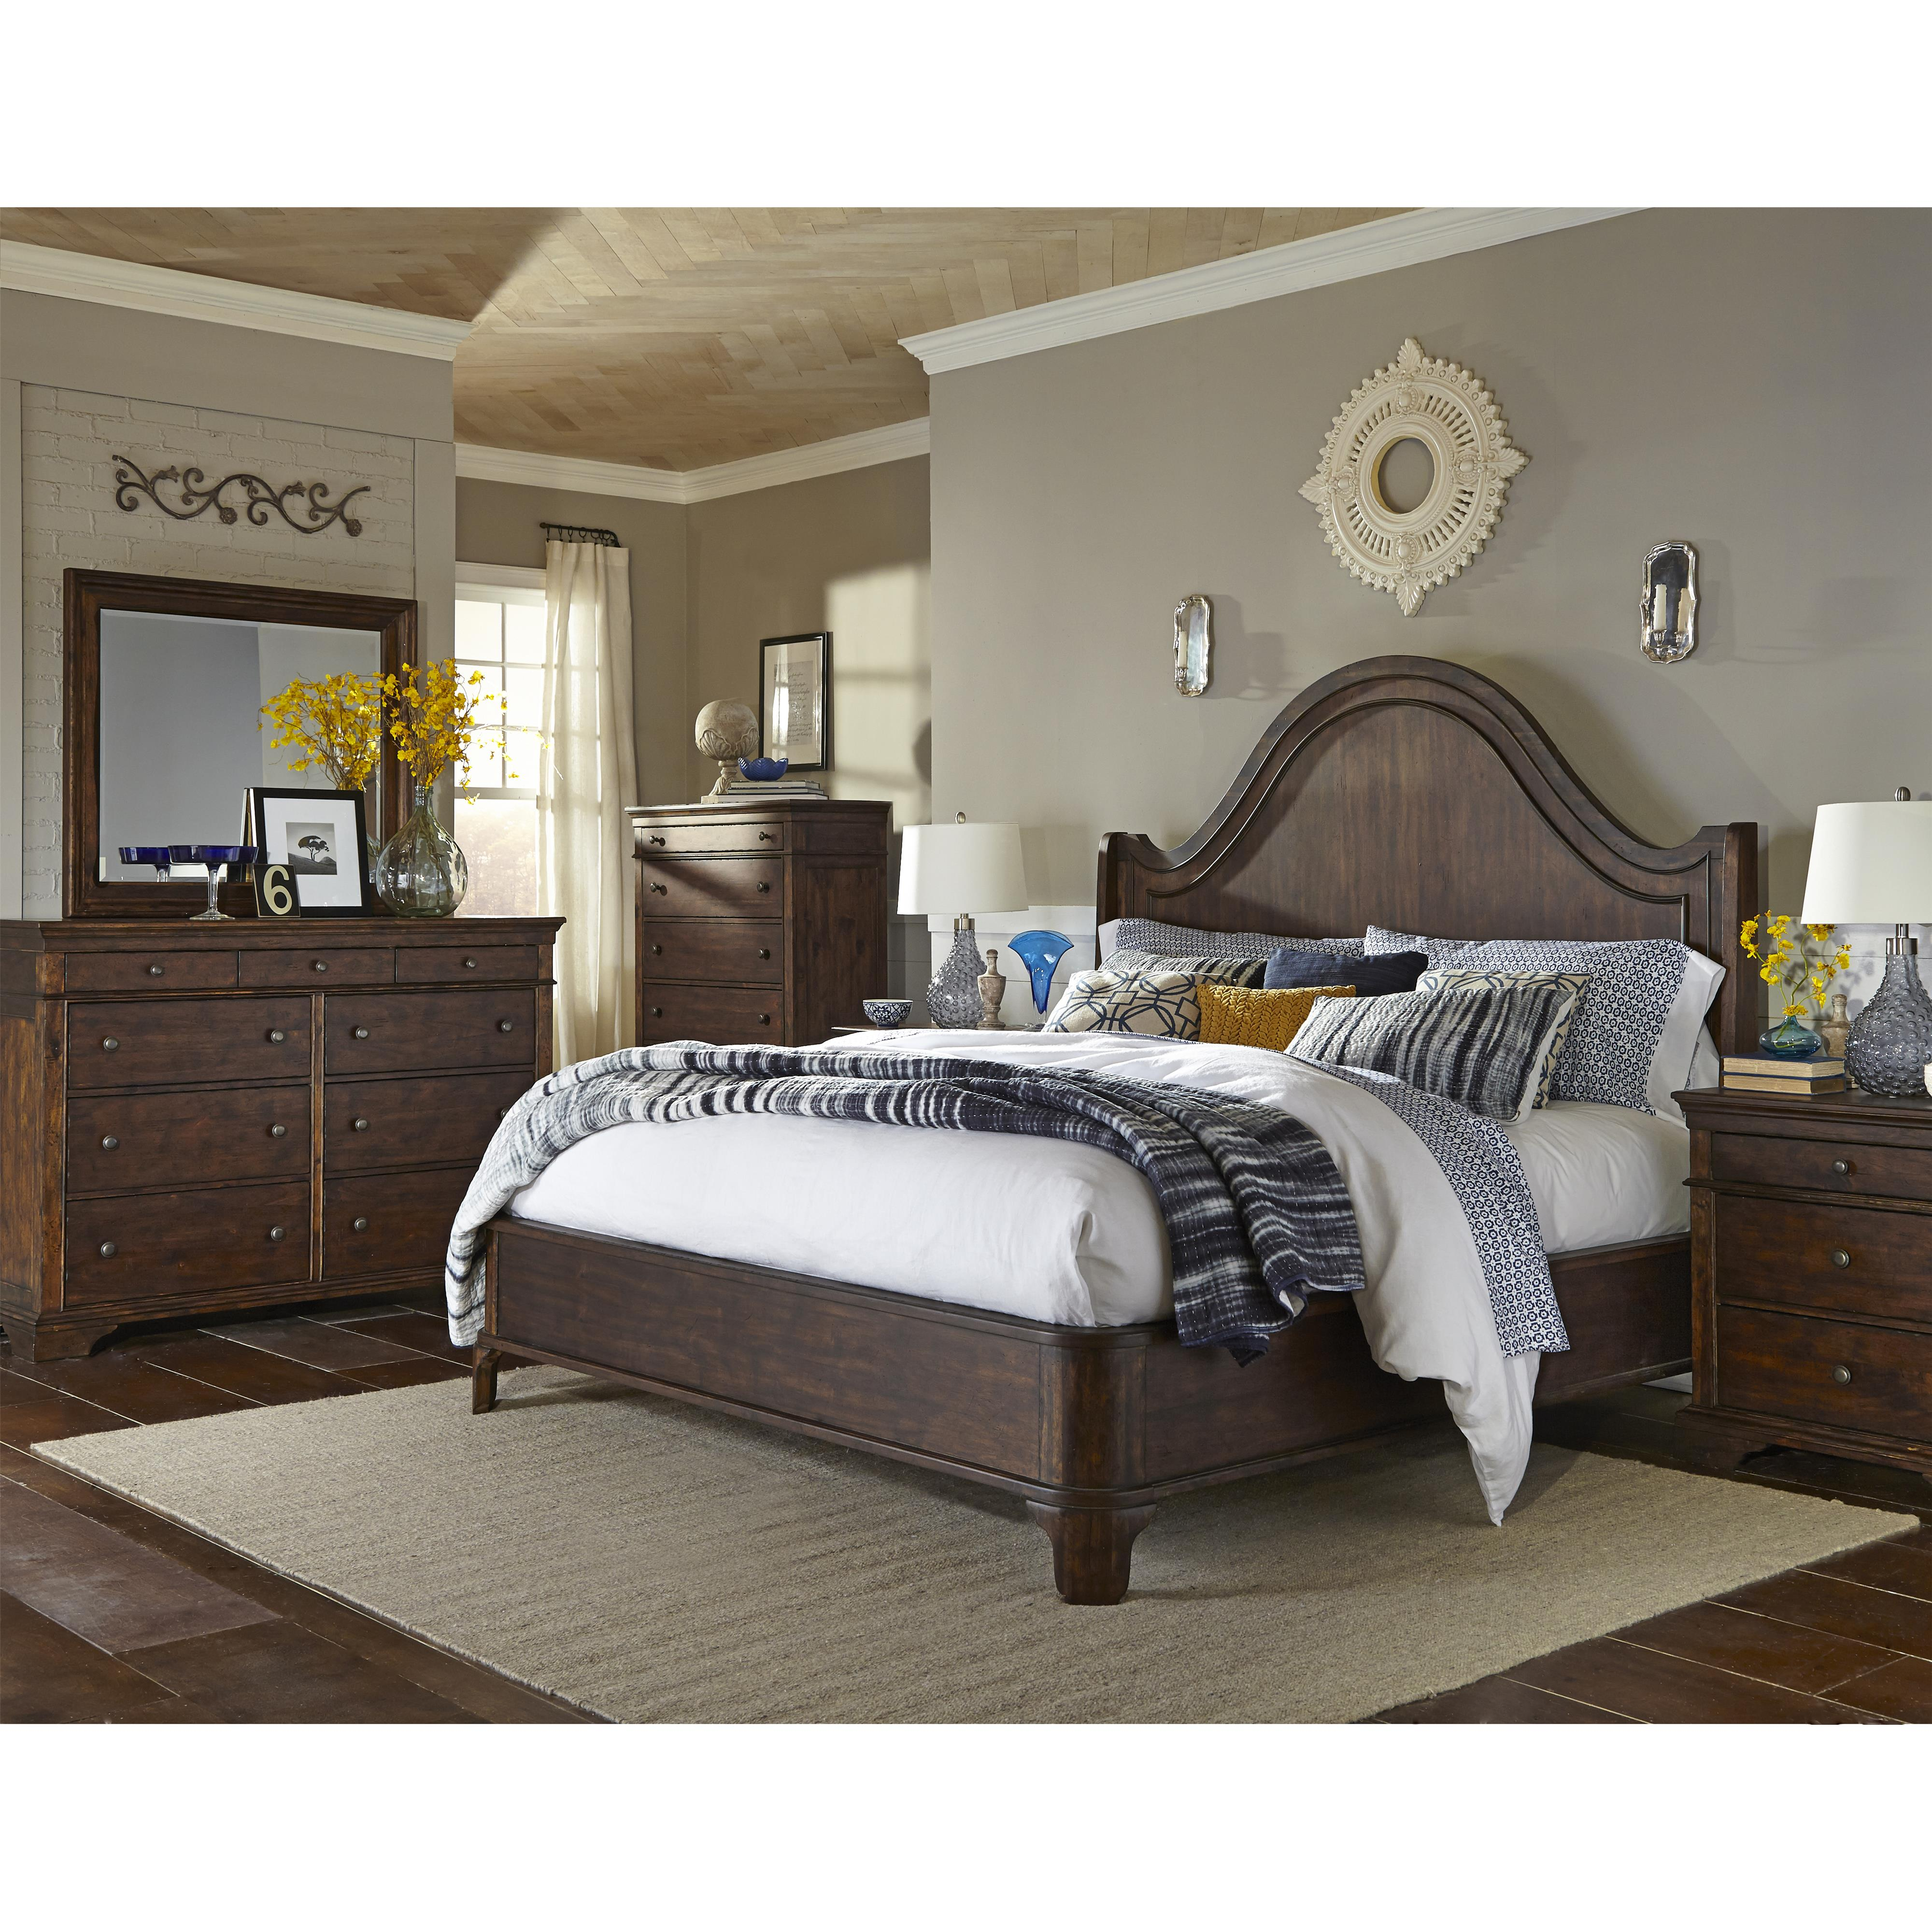 Trisha yearwood home collection by klaussner trisha for Bedroom furniture 37027